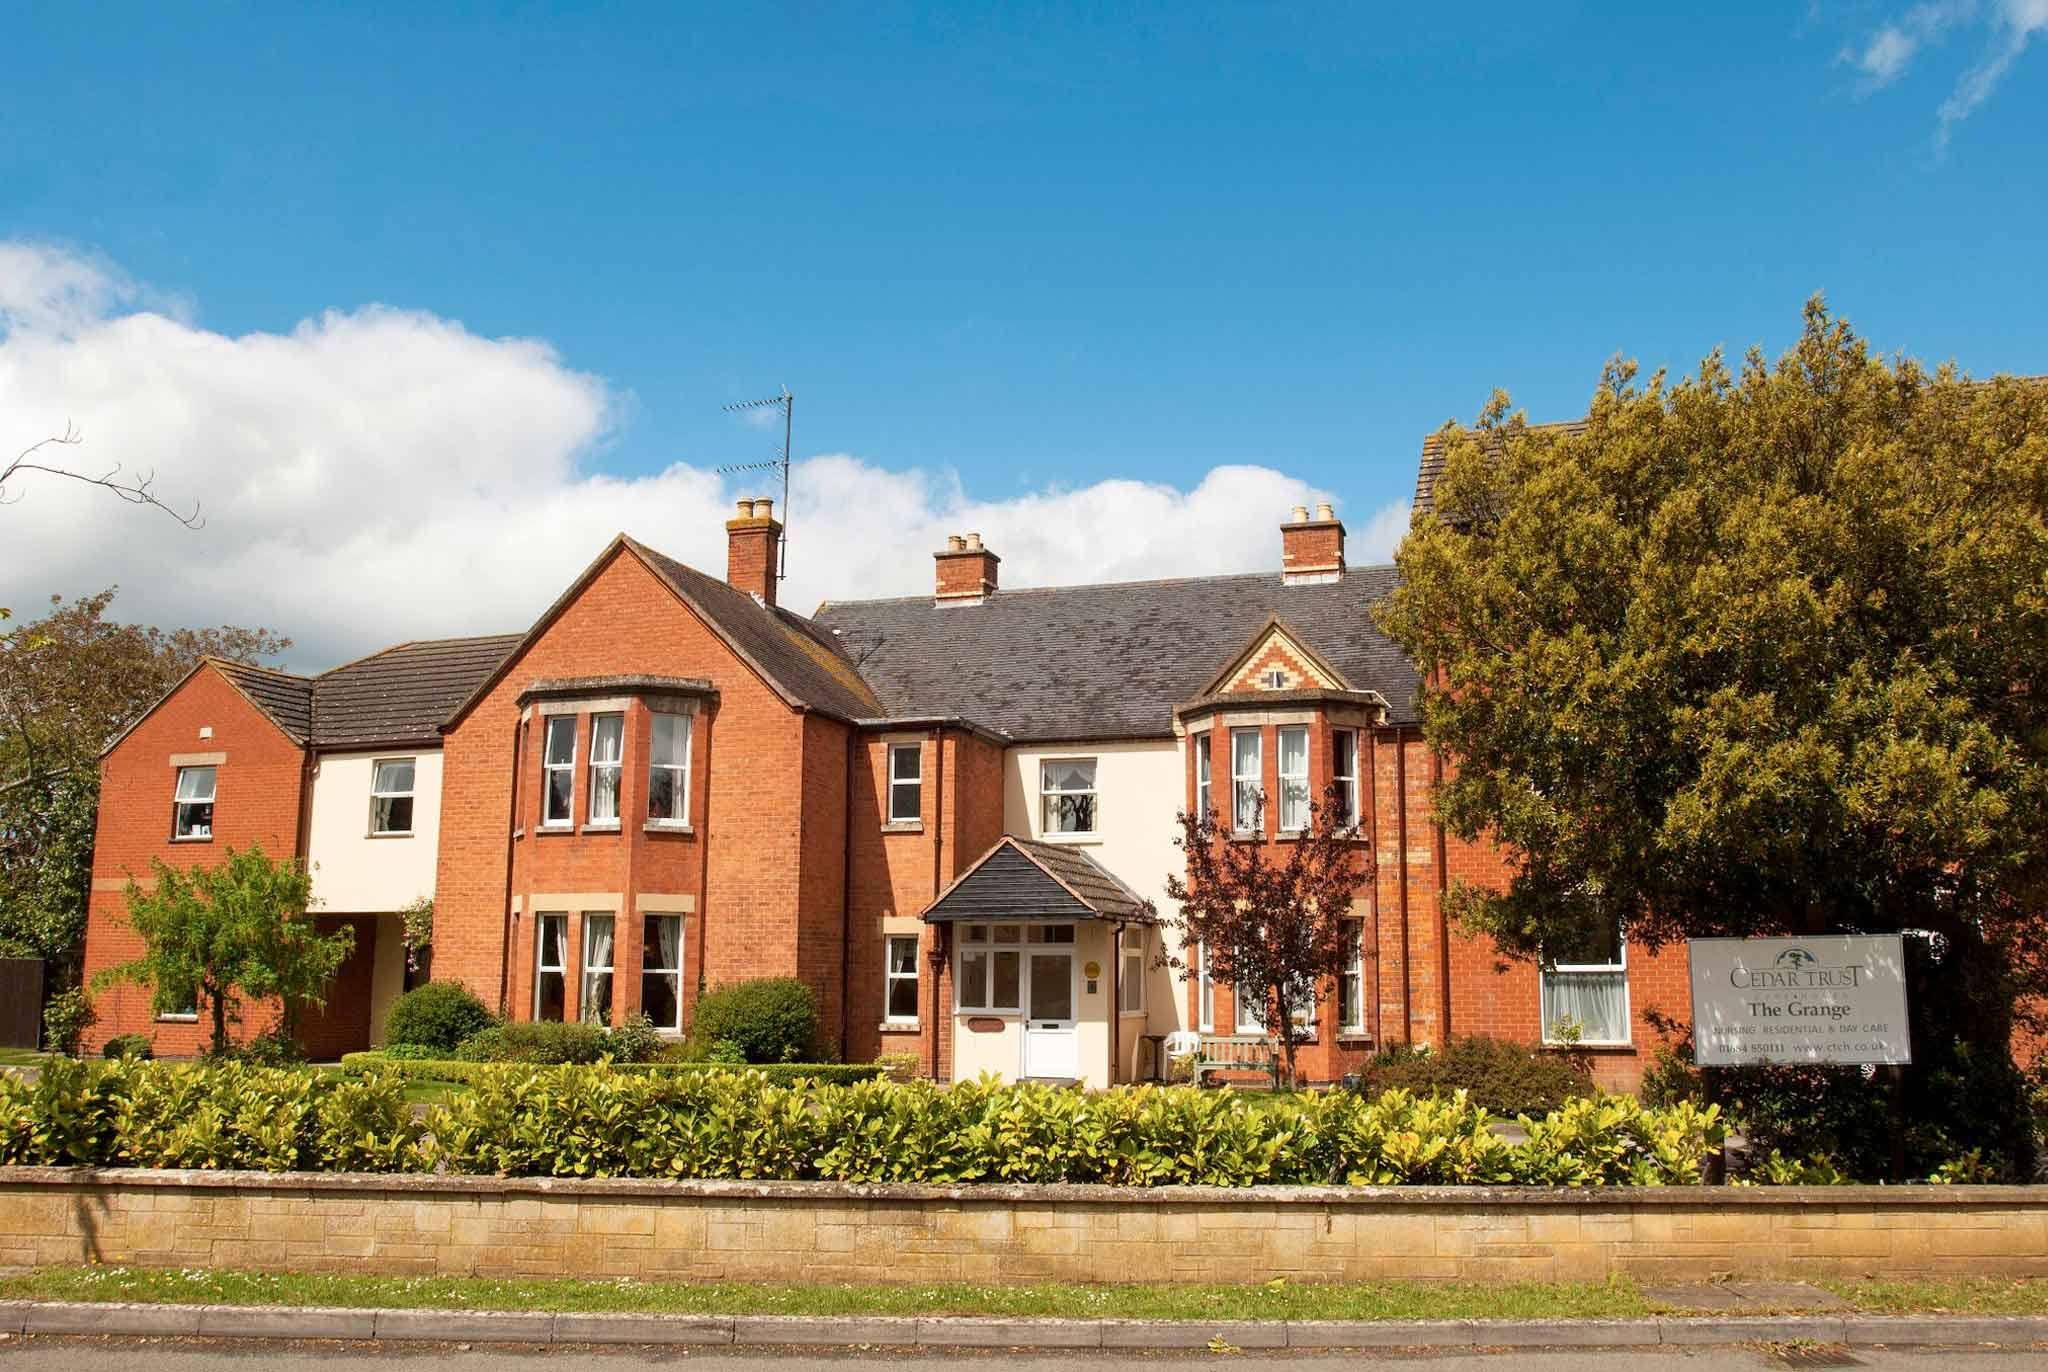 The Grange Nursing & Care Home